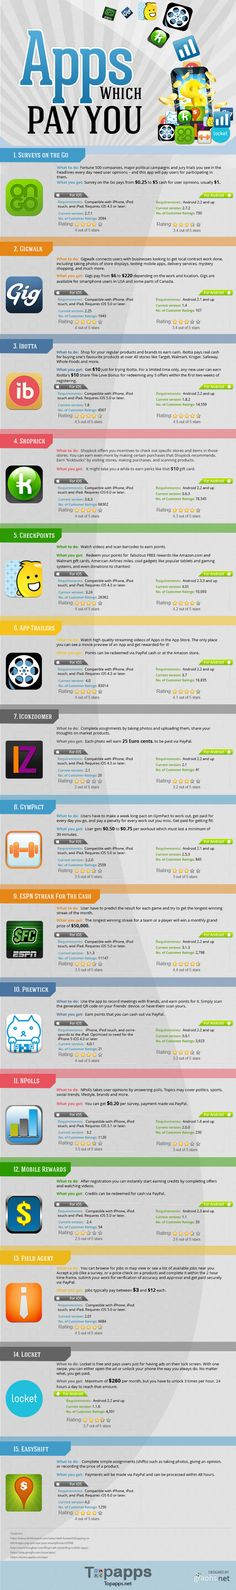 #infografia Apps que te pagan   Apps that pay you #Infographic (Tech Accessories Money)